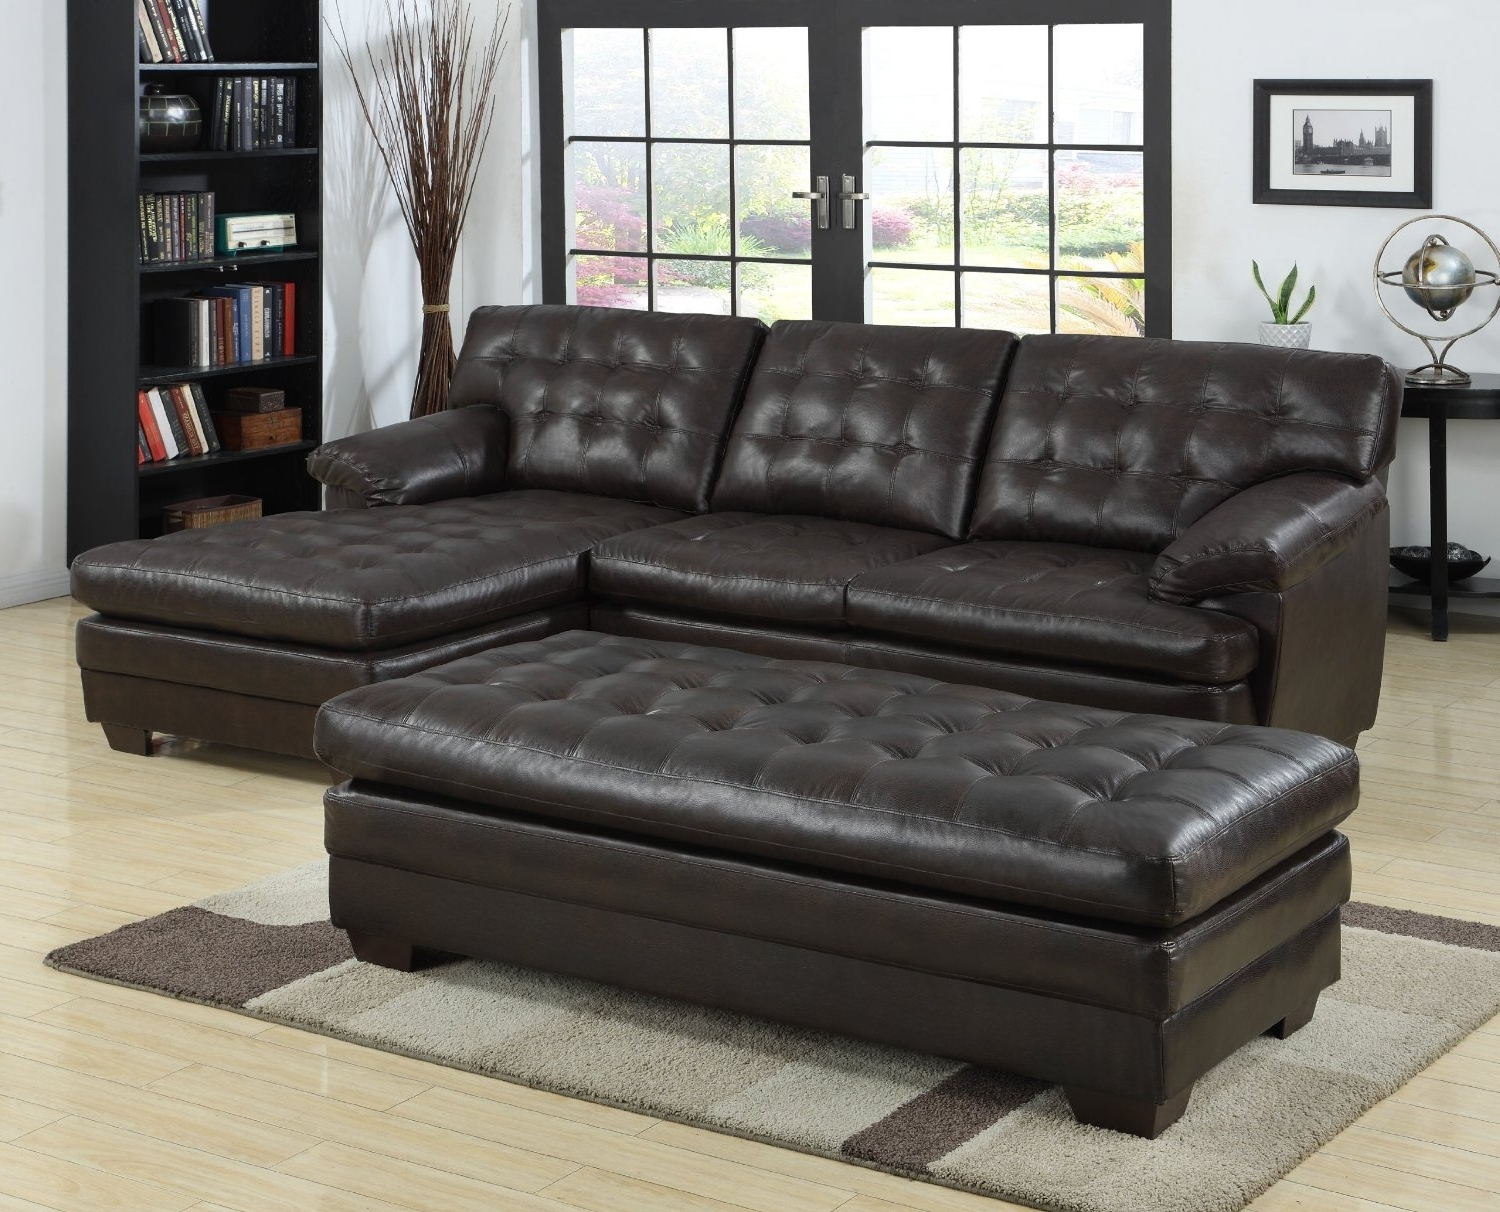 Sectional Sofas With Chaise And Ottoman In Fashionable Black Tufted Leather Sectional Sofa With Chaise And Bench Seat (View 11 of 15)